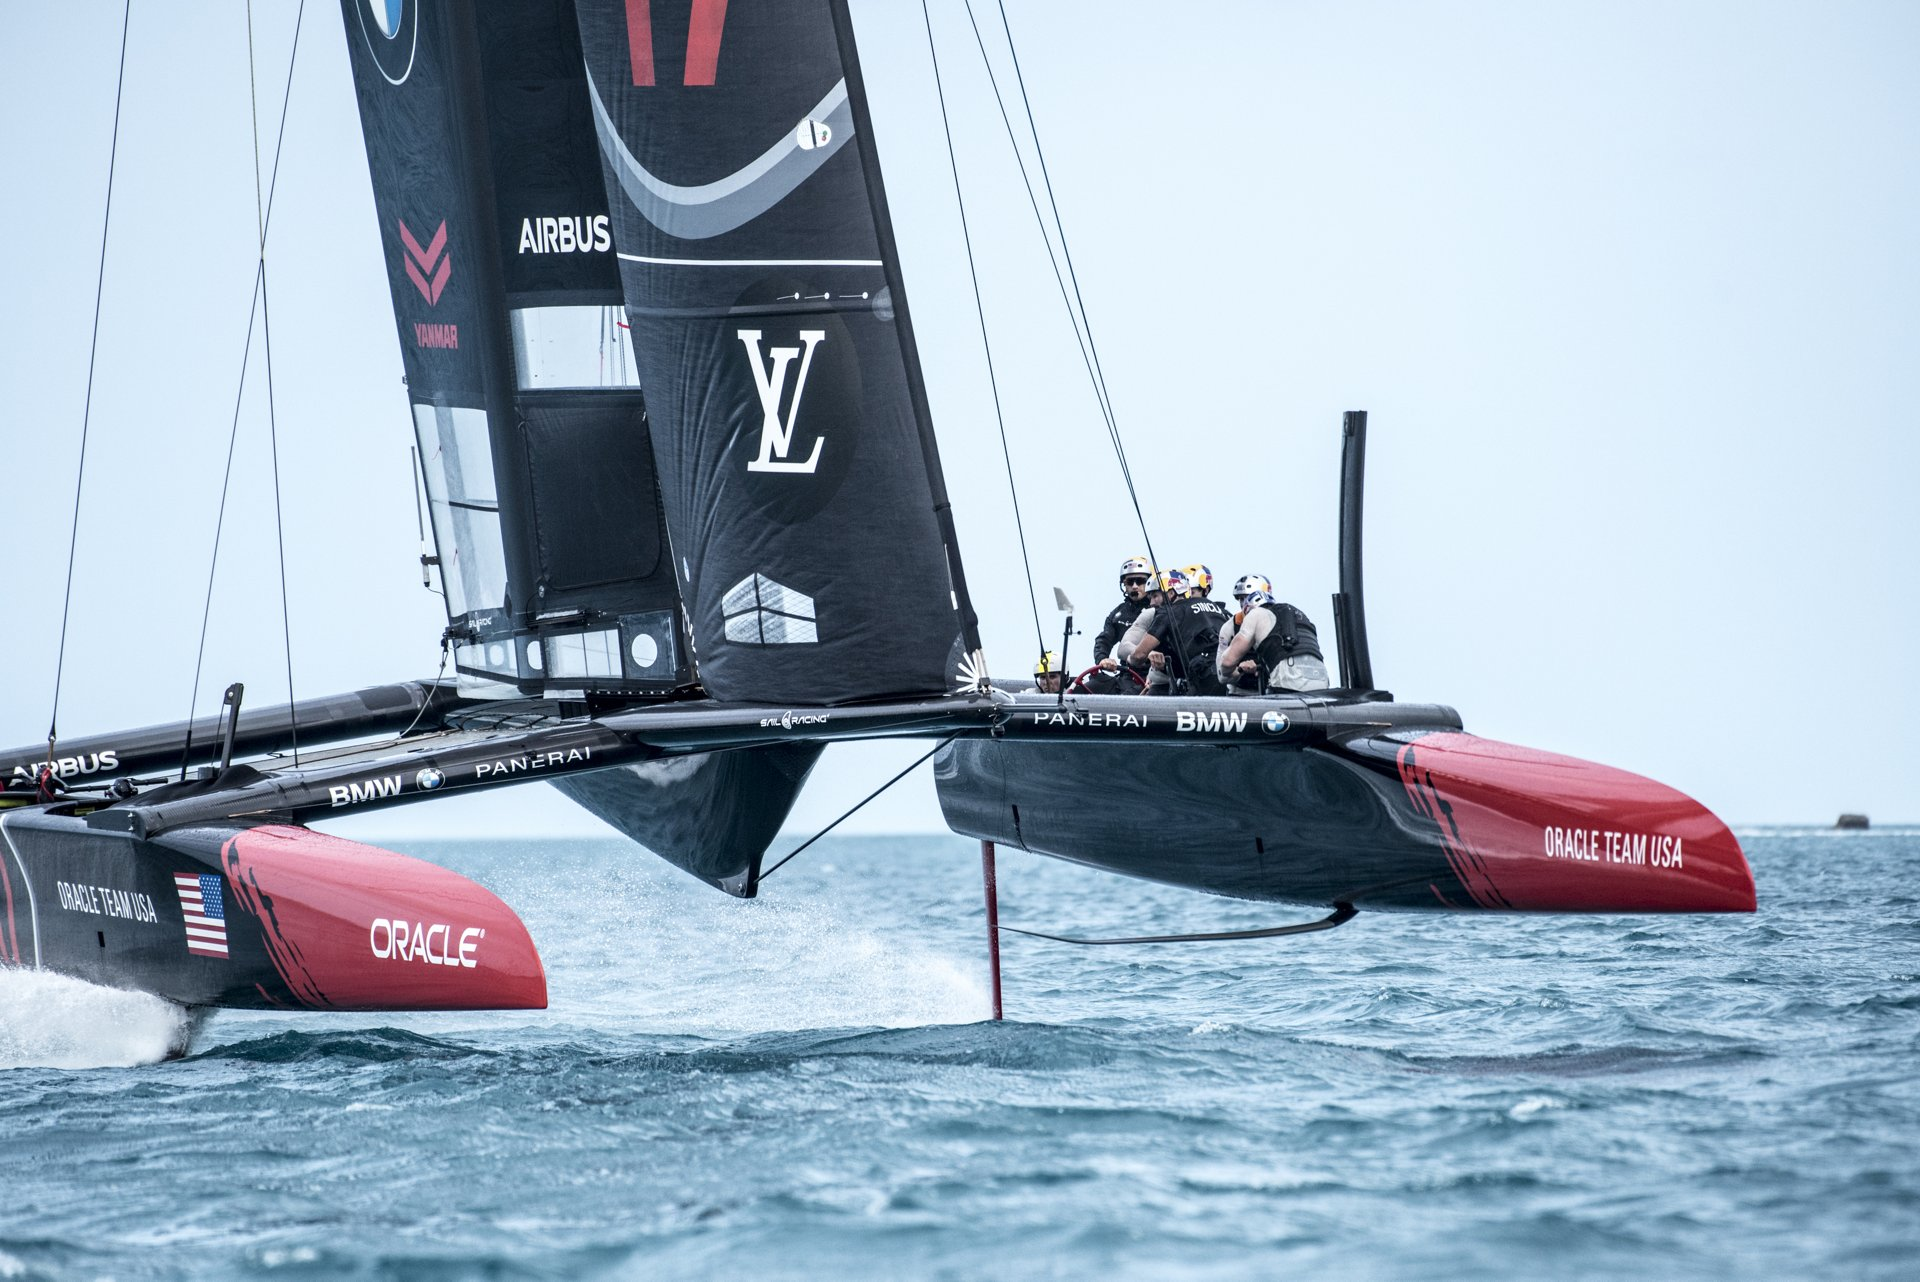 As Official Innovation Partner of ORACLE TEAM USA, Airbus is sharing its know-how in such fields as aerodynamics, instrumentation and simulation, composites, structures, hydraulics and data analysis